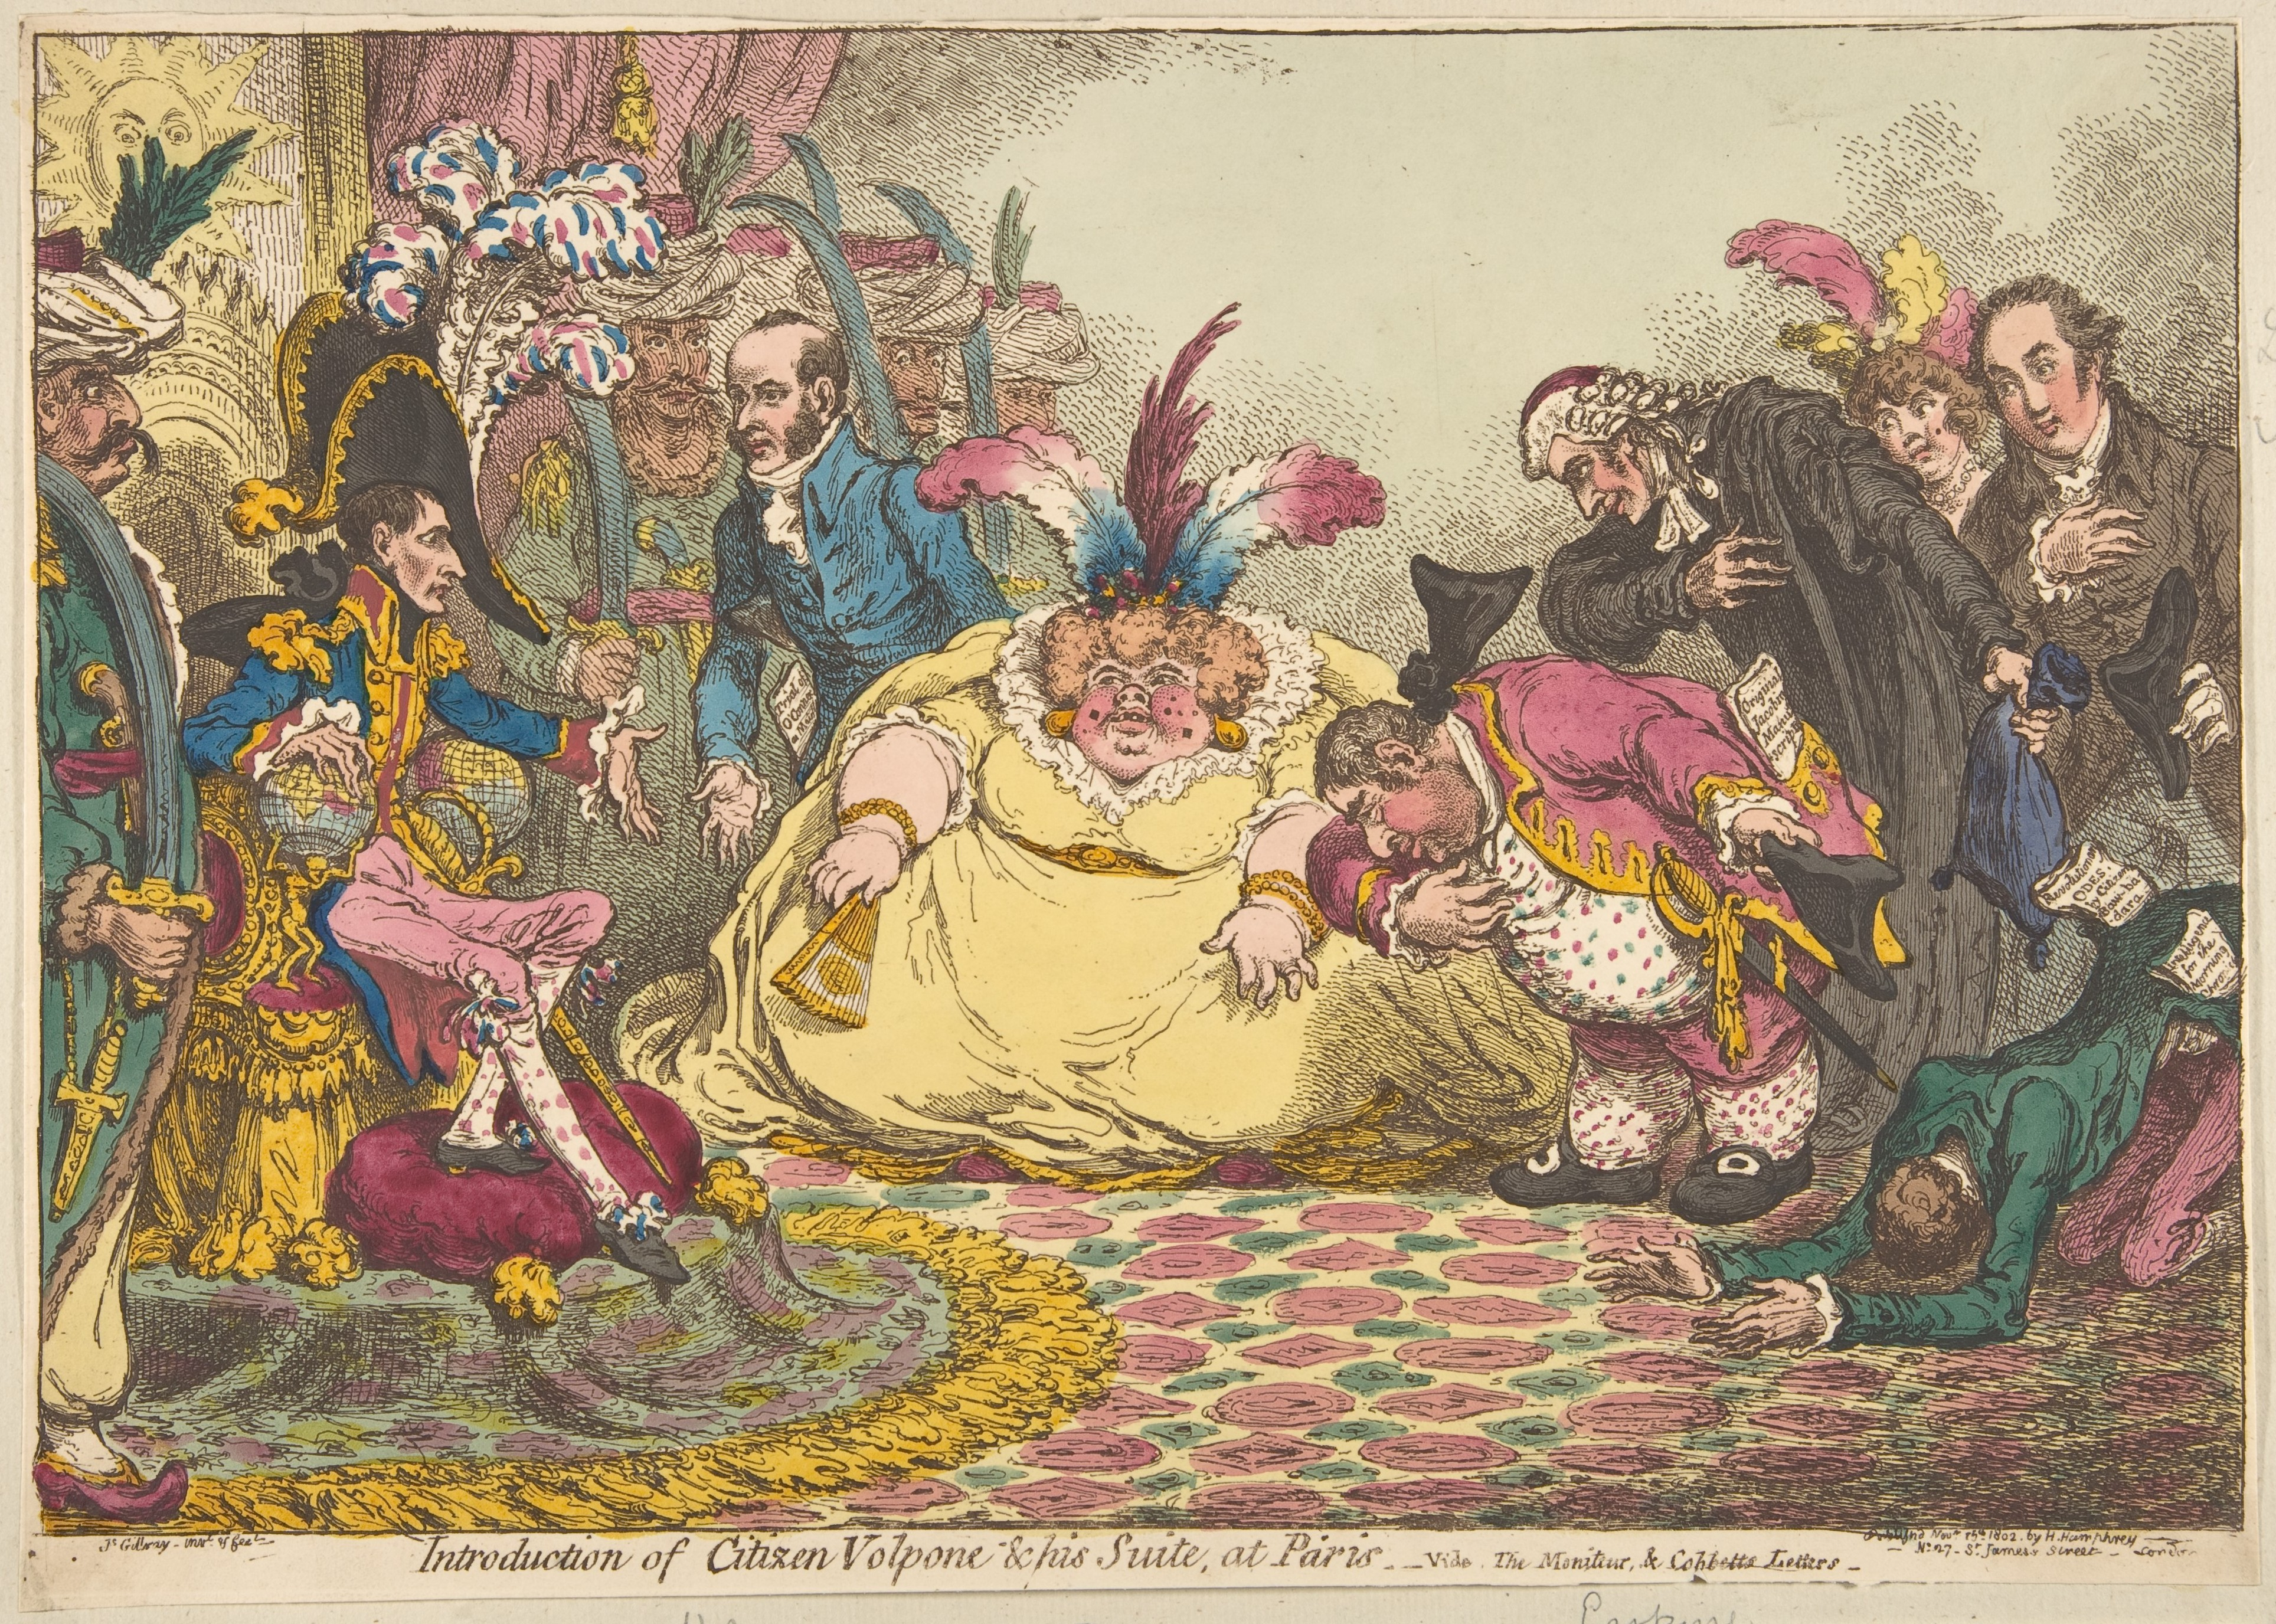 filejames gillray introduction of citizen volpone amp his